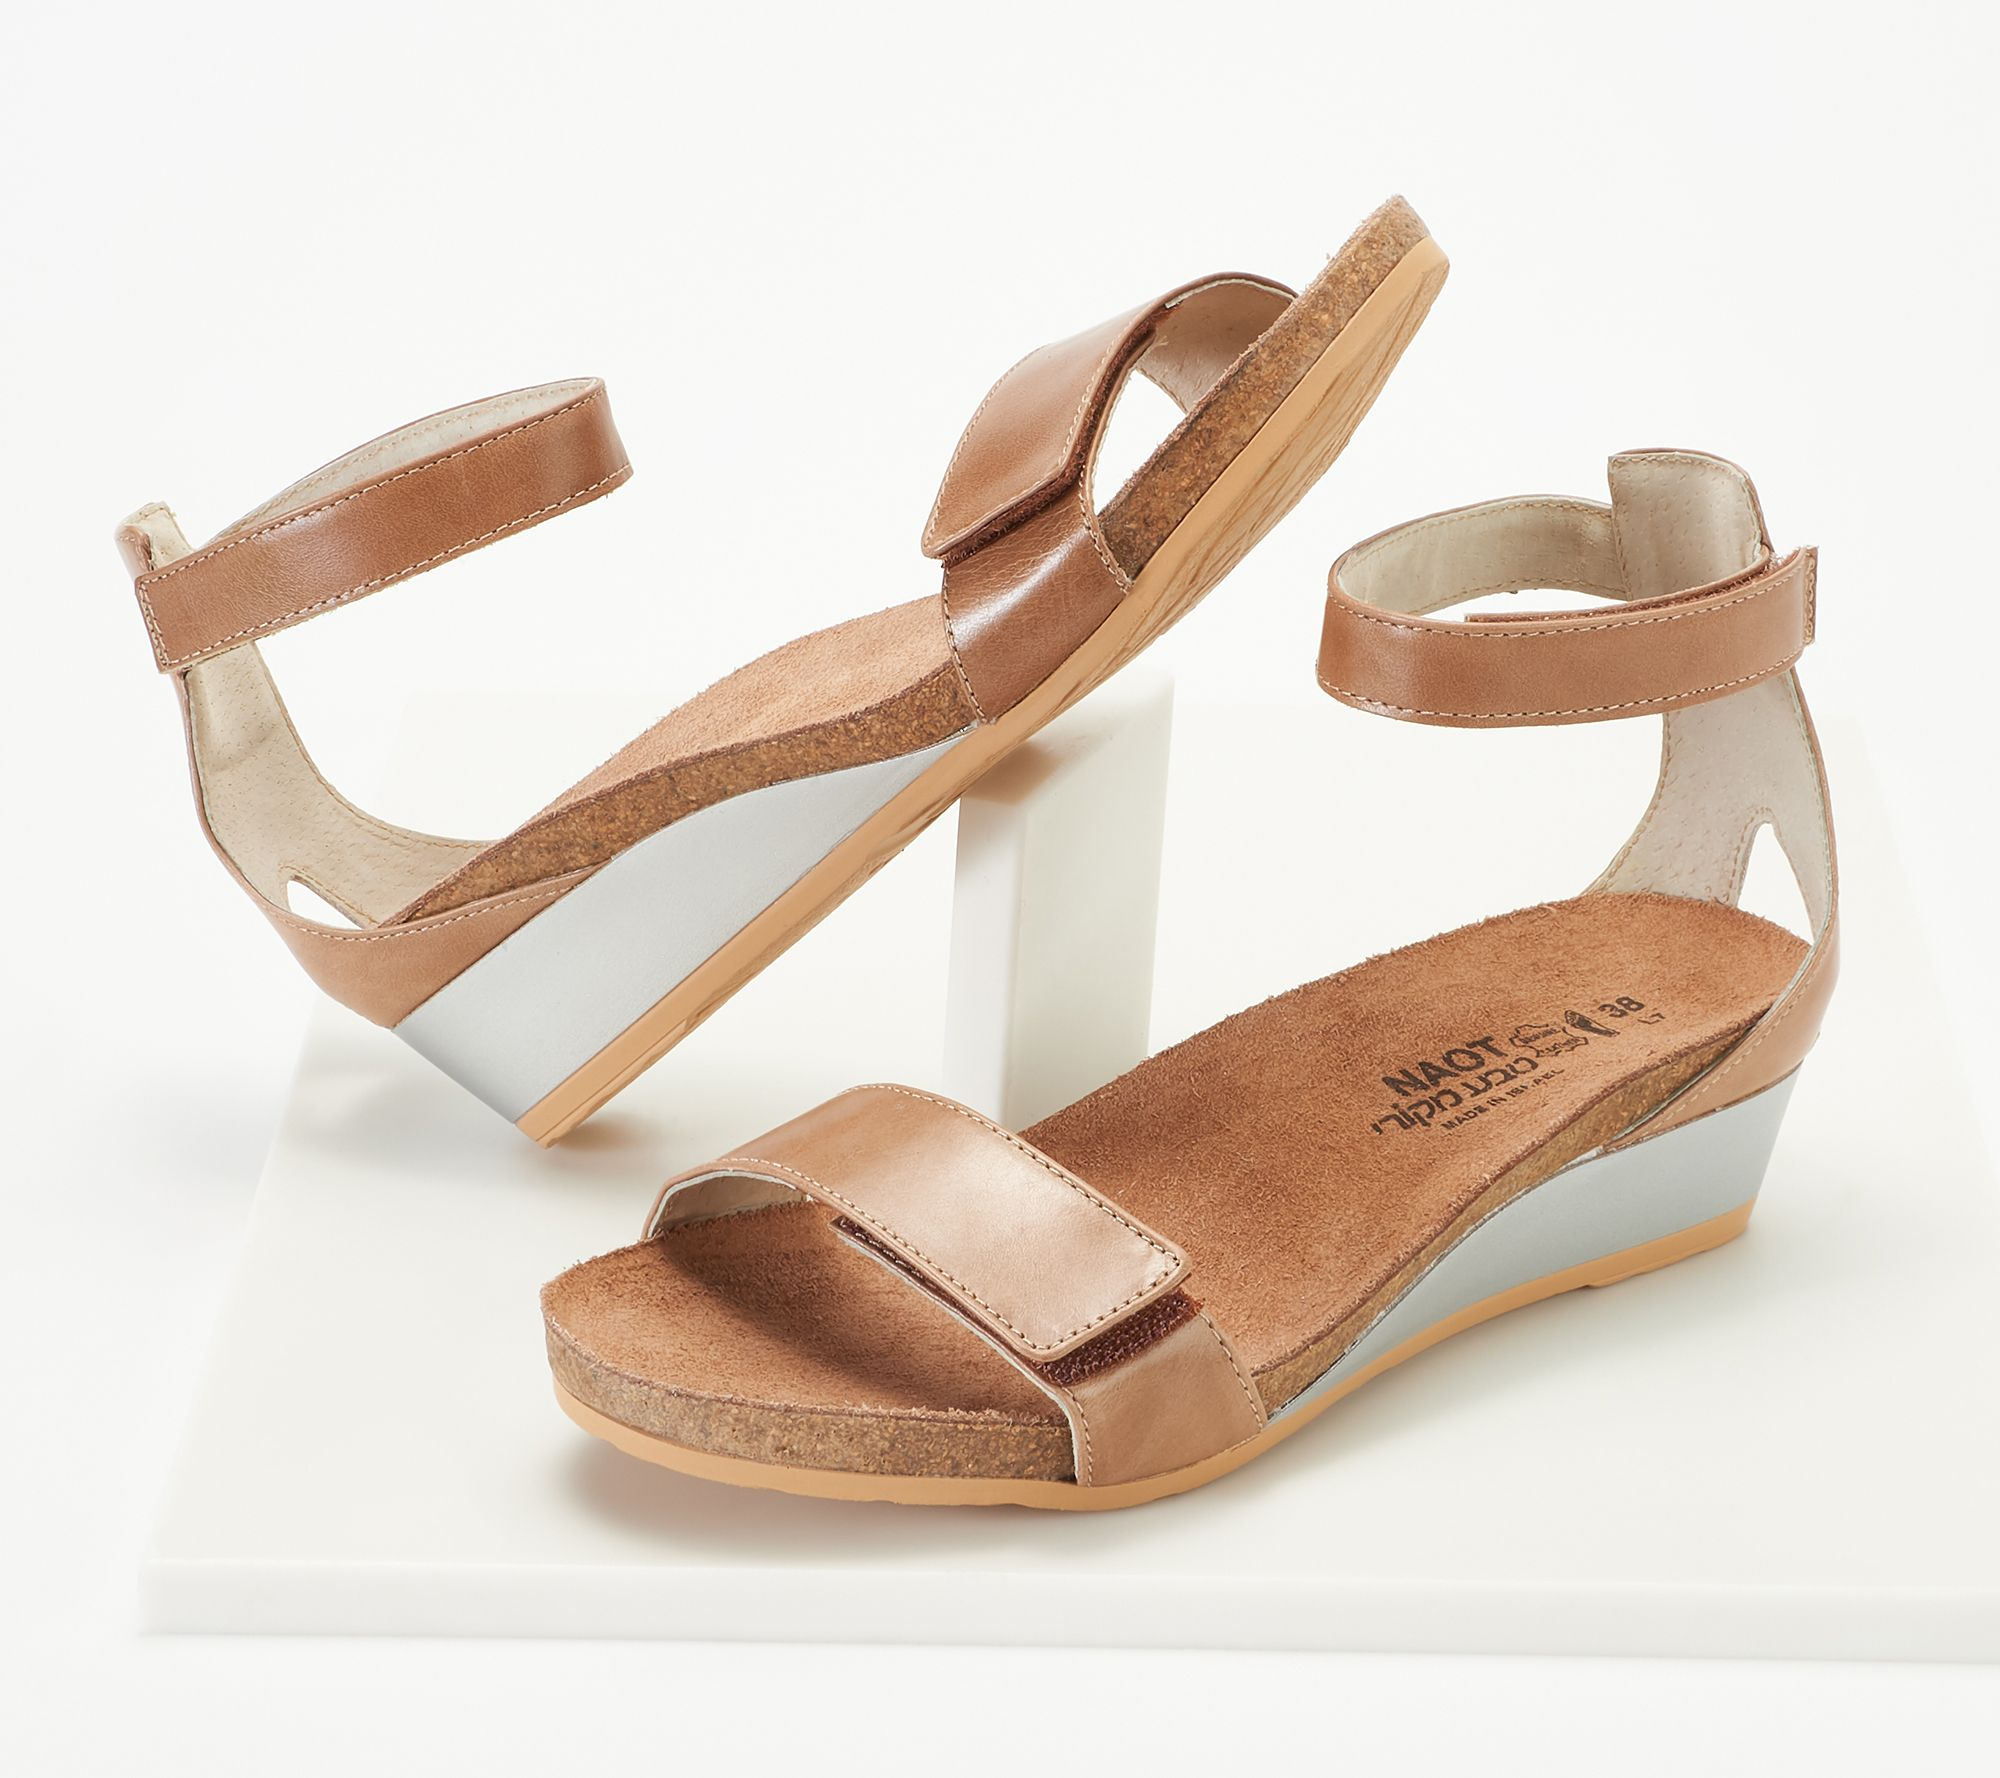 dc986d2509b Naot Leather Ankle Strap Wedge Sandals - Mermaid — QVC.com